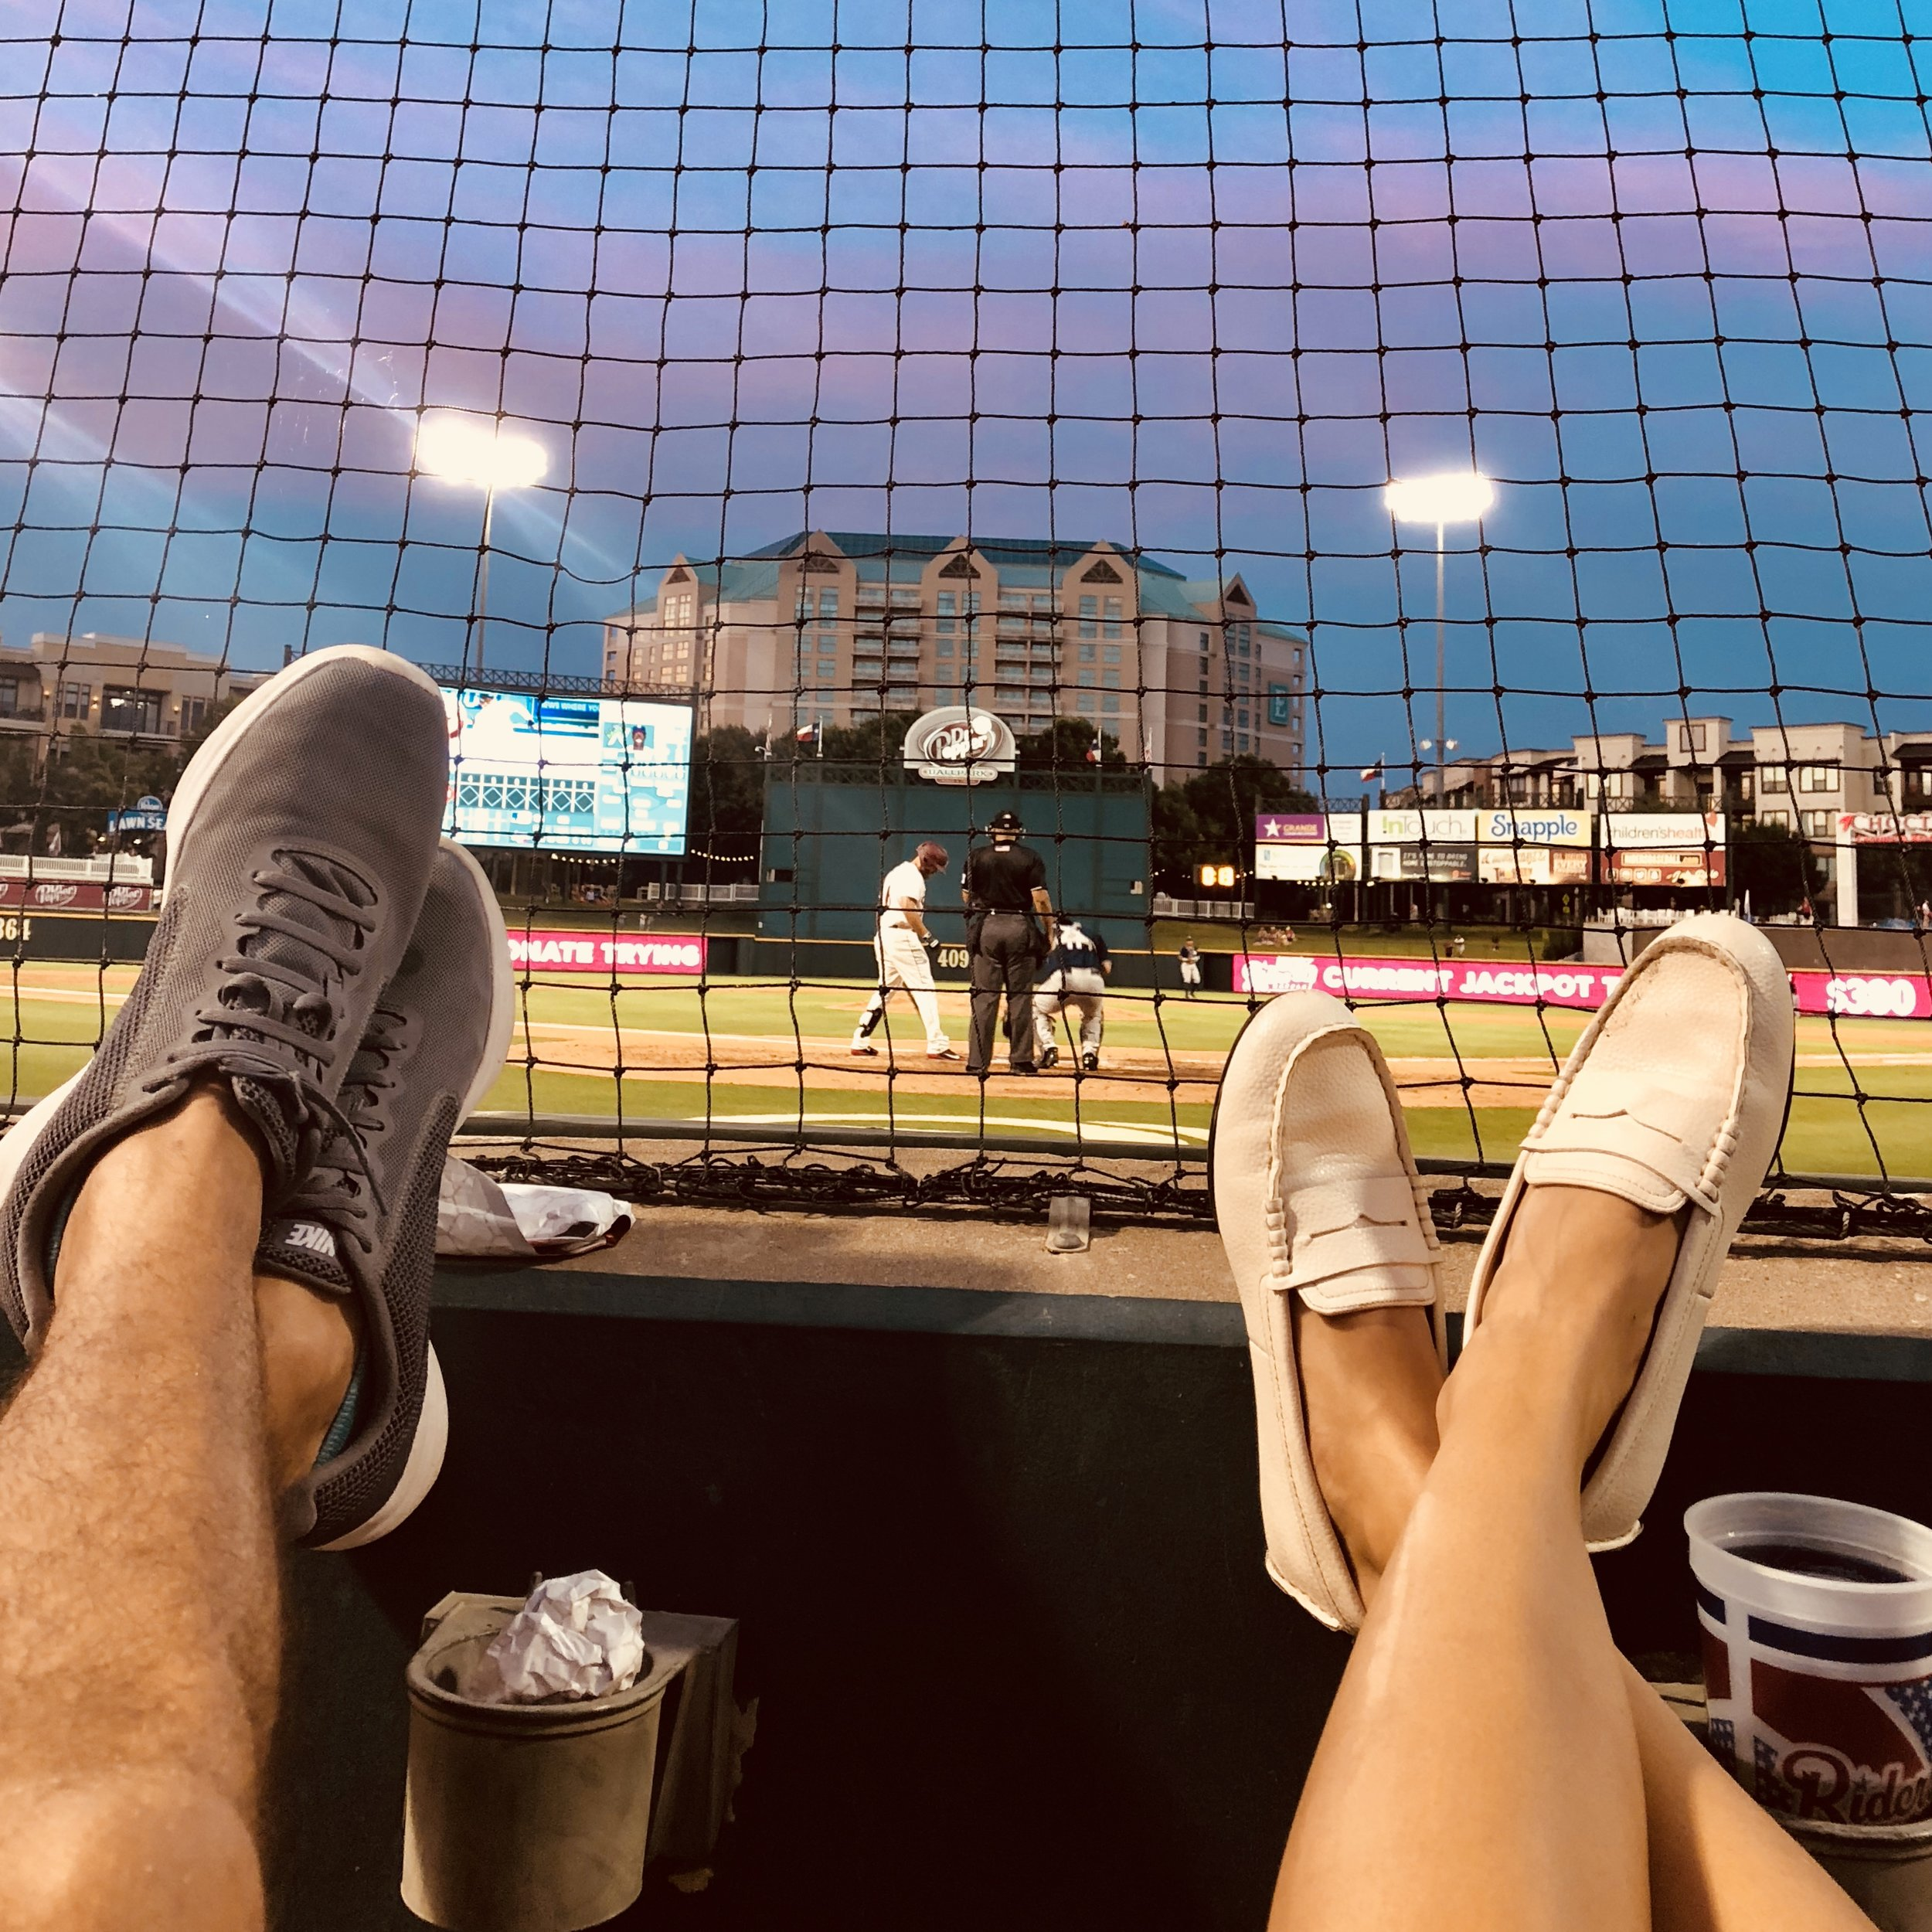 Here we are last night at the ball park! I've paired these loafers with black dress, a white romper, some floral shorts, and of course jeans. So many options with these!!